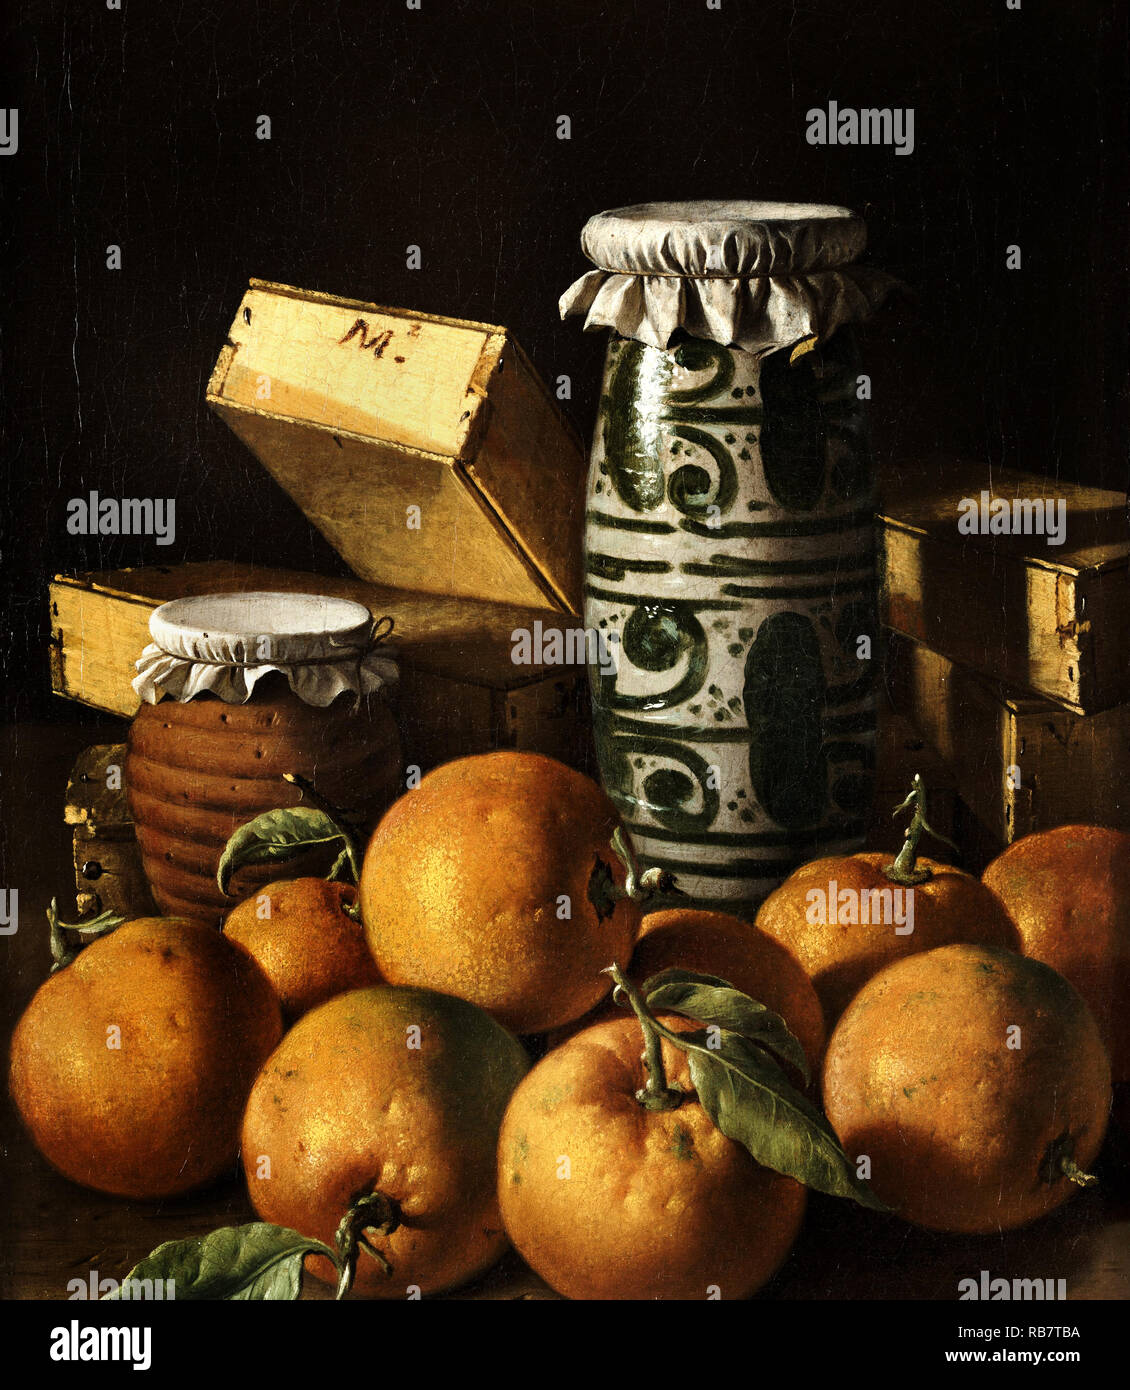 Luis Egidio Melendez, Still Life with Oranges, Jars, and Boxes of Sweets, Circa 1760, Oil on canvas, Kimbell Art Museum, Fort Worth, Texas, USA. - Stock Image